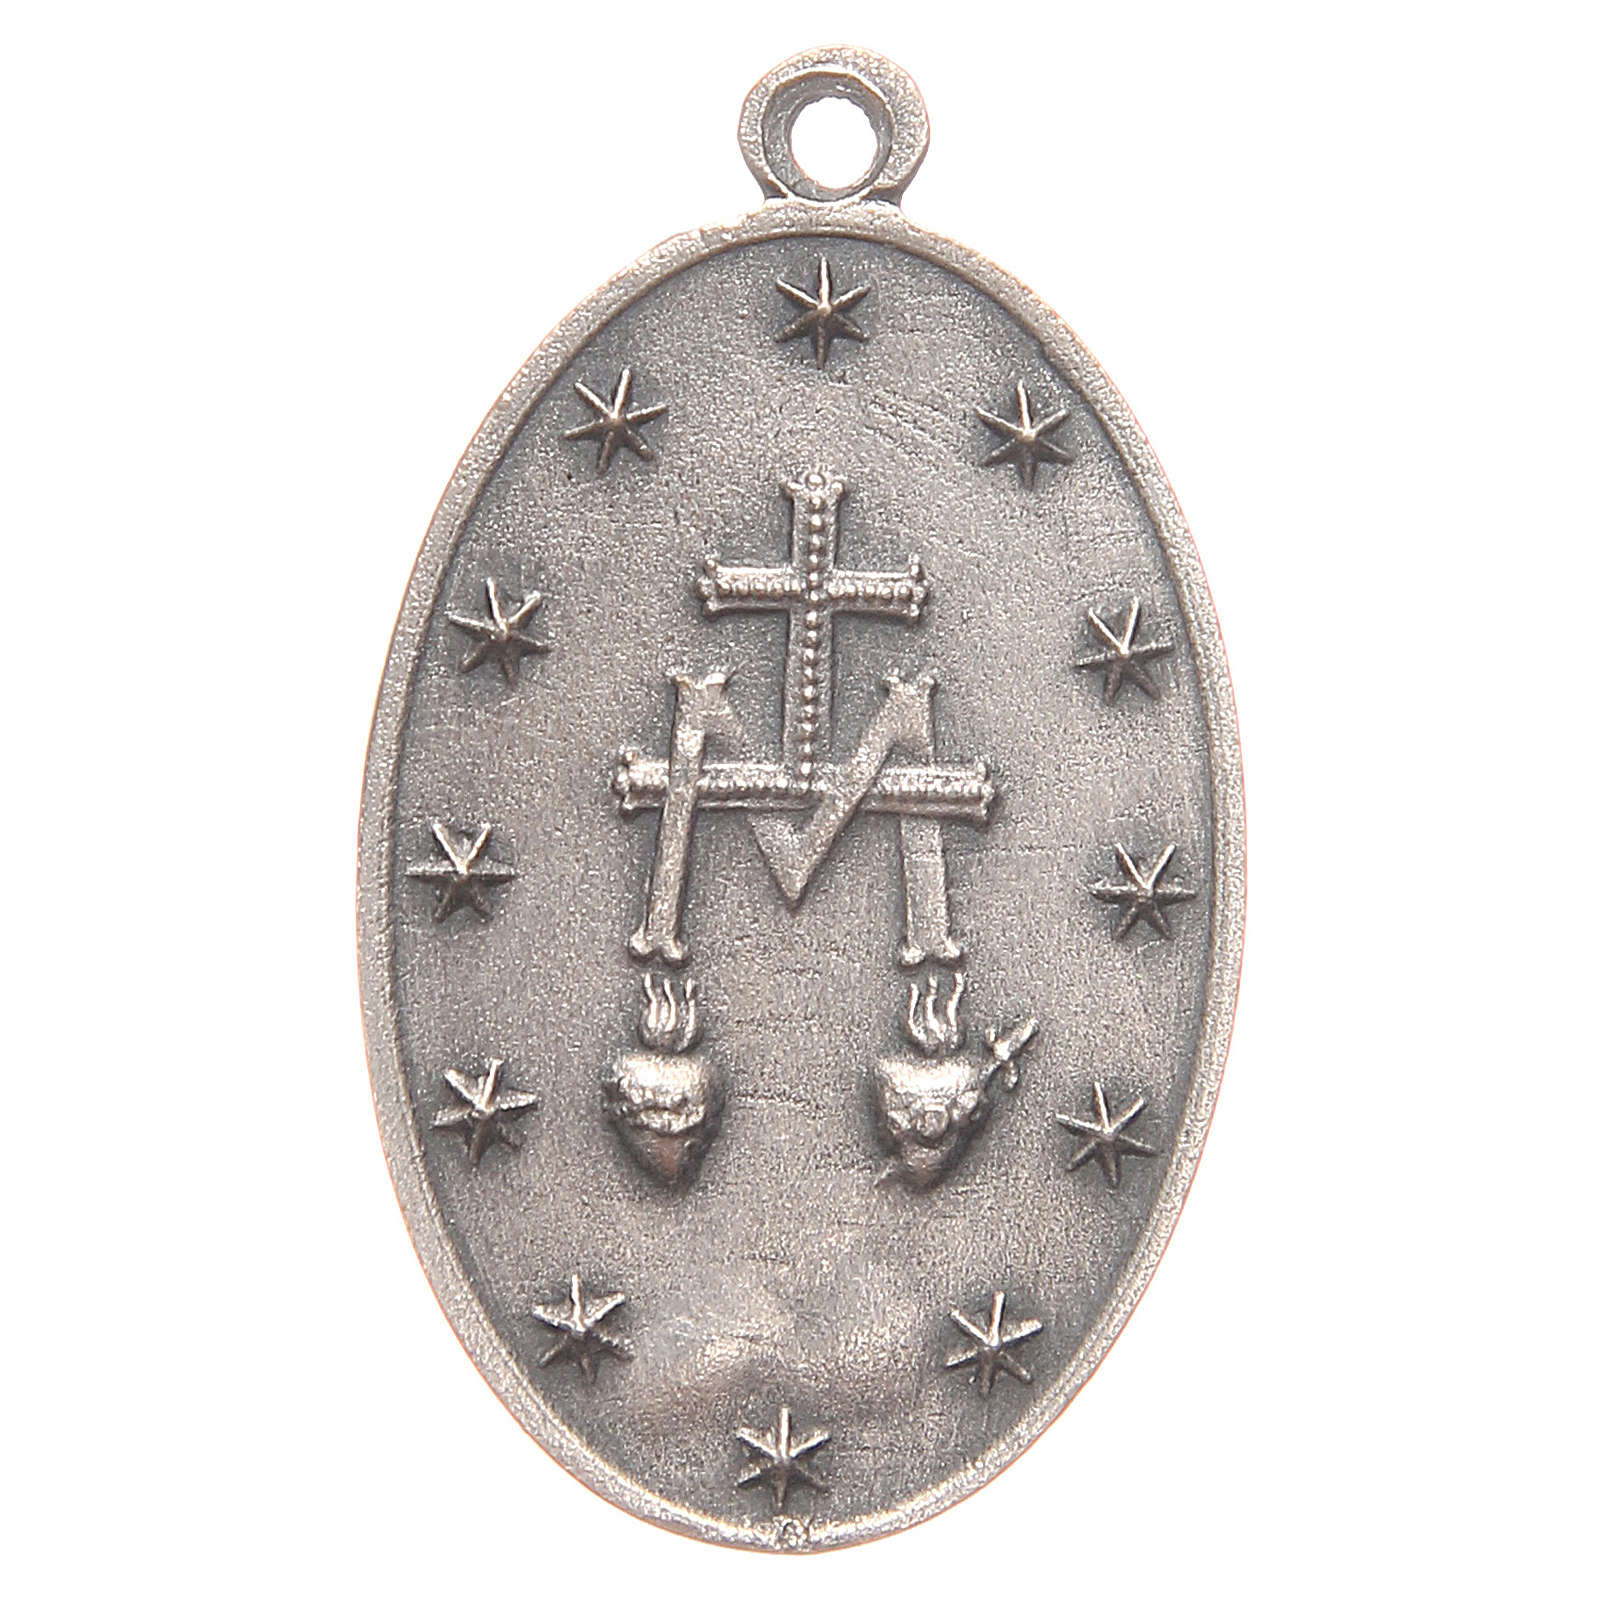 Miraculous Medal measuring 3.2cm 4